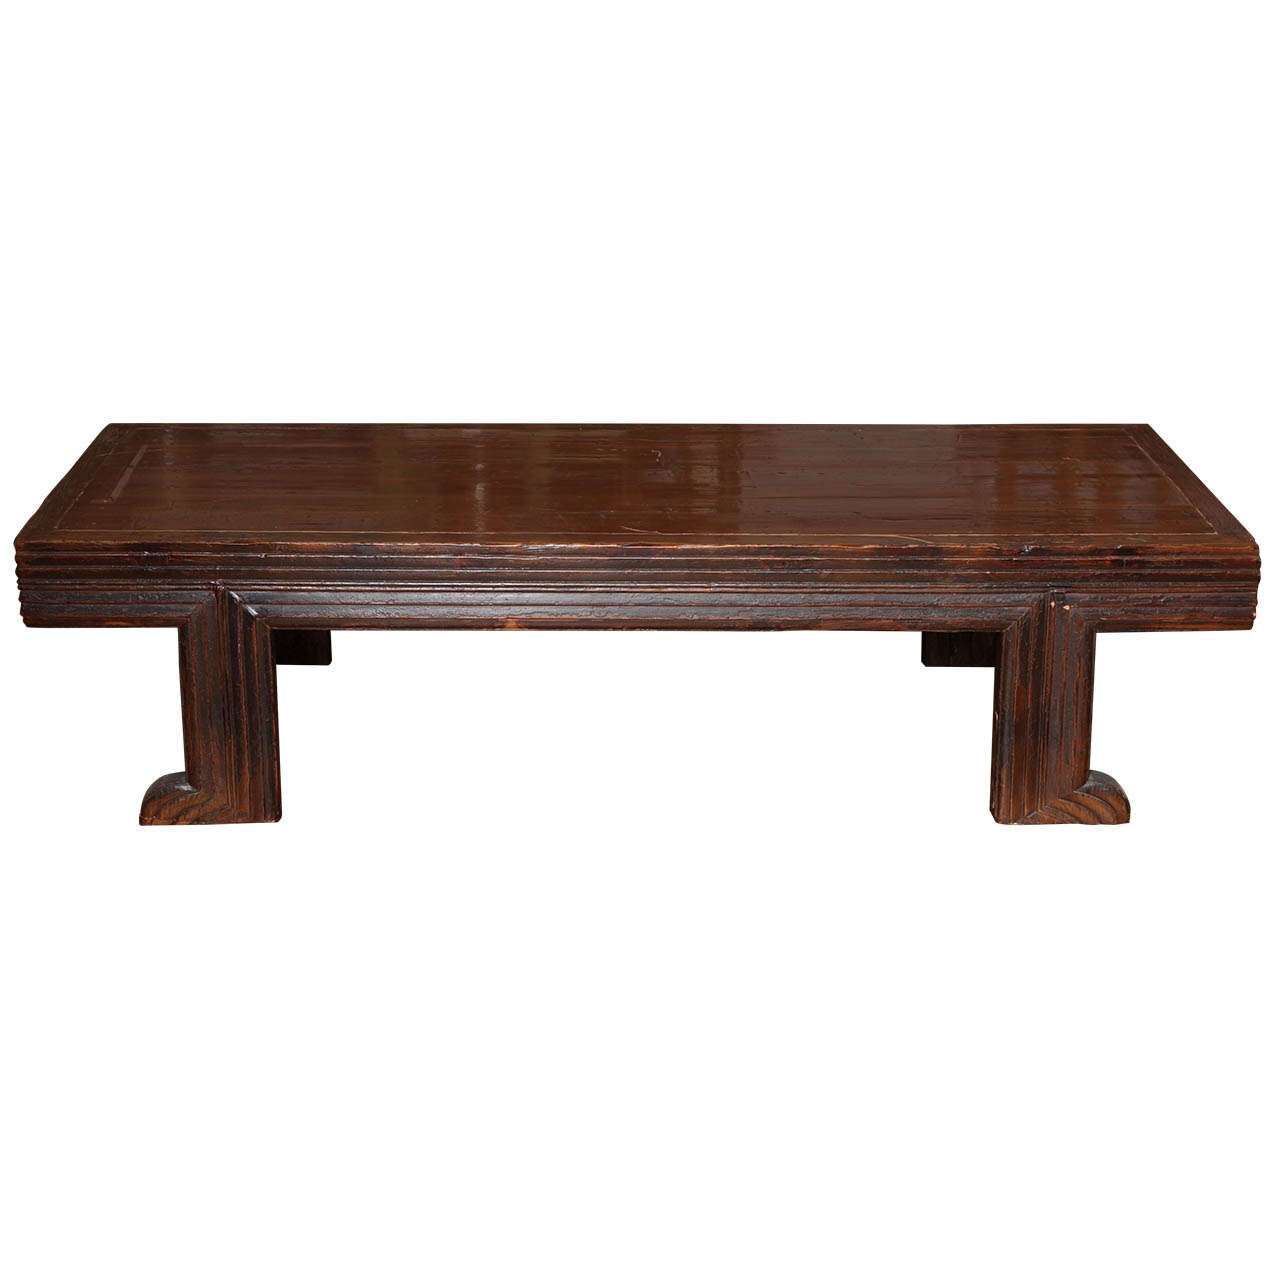 Unusual long chinese fine elmwood coffee table at 1stdibs for Quirky coffee tables